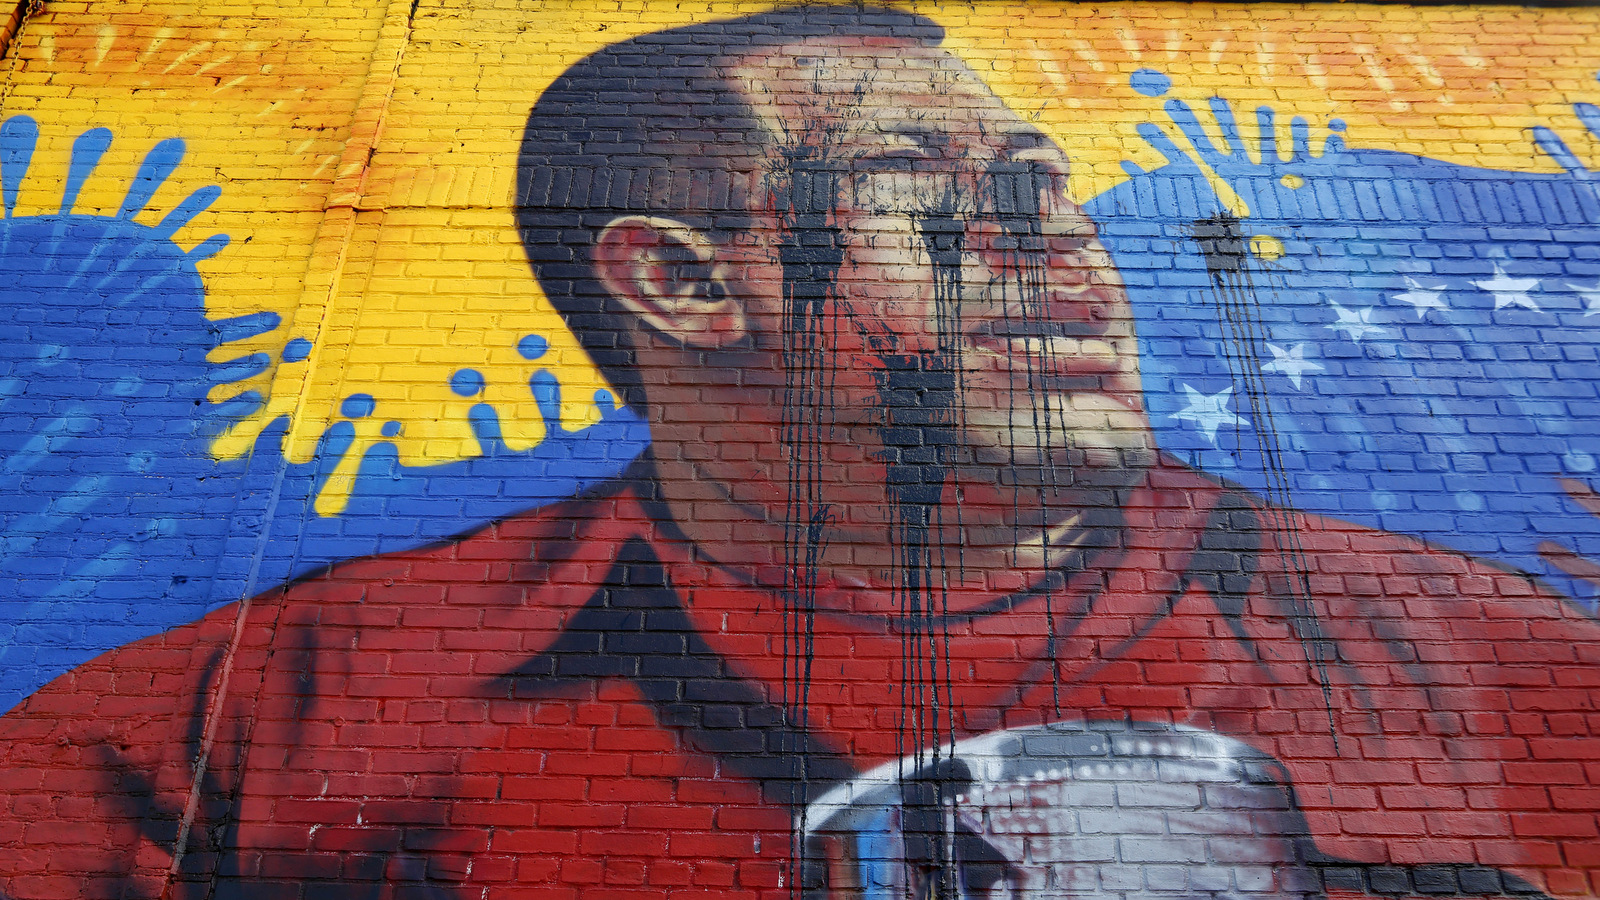 A mural featuring an image of former Venezuelan President Hugo Chavez was defaced in the Bronx borough of New York, Tuesday, May 9, 2017. (AP/Seth Wenig)